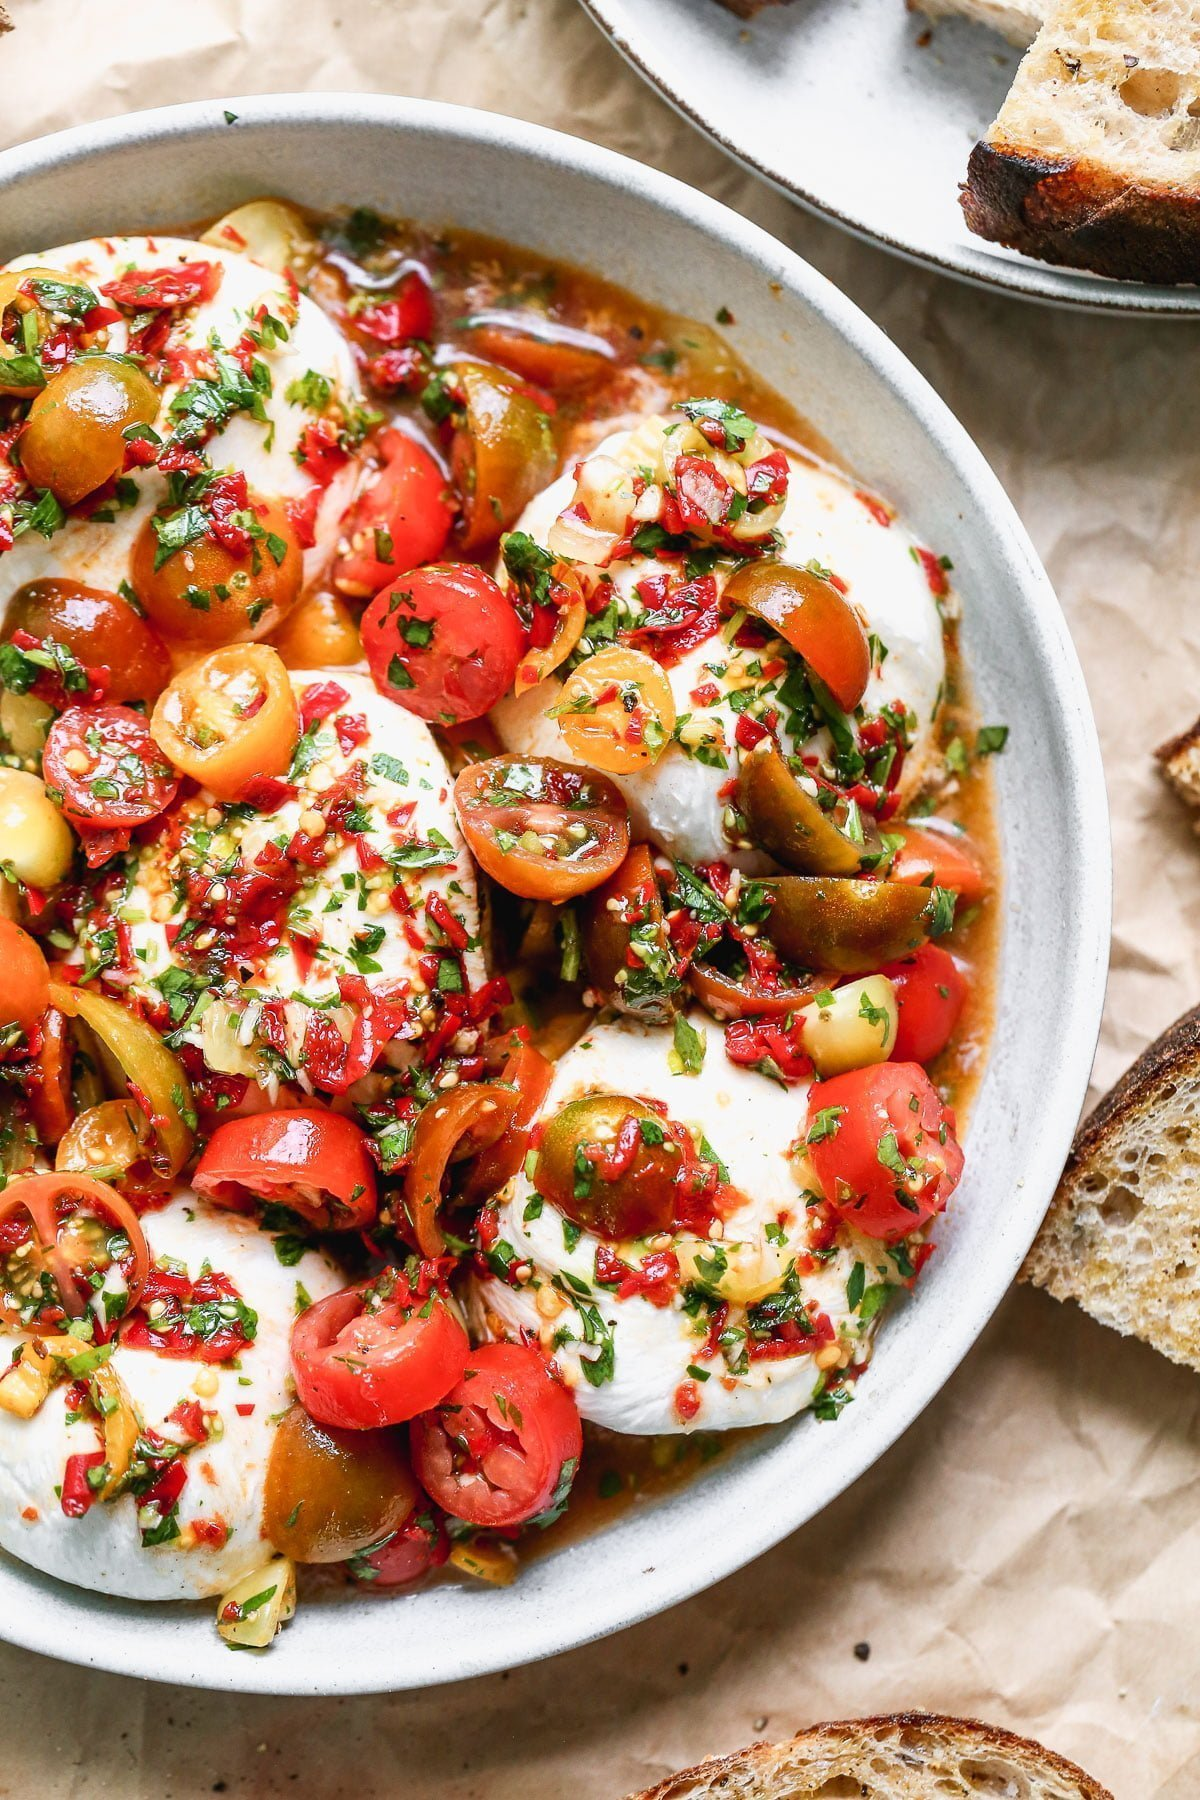 This Calabrian Chili and Burrata Appetizer is going to be the star of all your summer gatherings. This is basically a classic bruschetta but so so much better. We take juicy heirloom cherry tomatoes and toss them with fiery calabrian chilis, zippy red wine vinegar, parsley, garlic, and a few briny capers. We spoon it over the most adorable mini creamy burrata balls and serve with crusty bread to soak up every juicy bite.